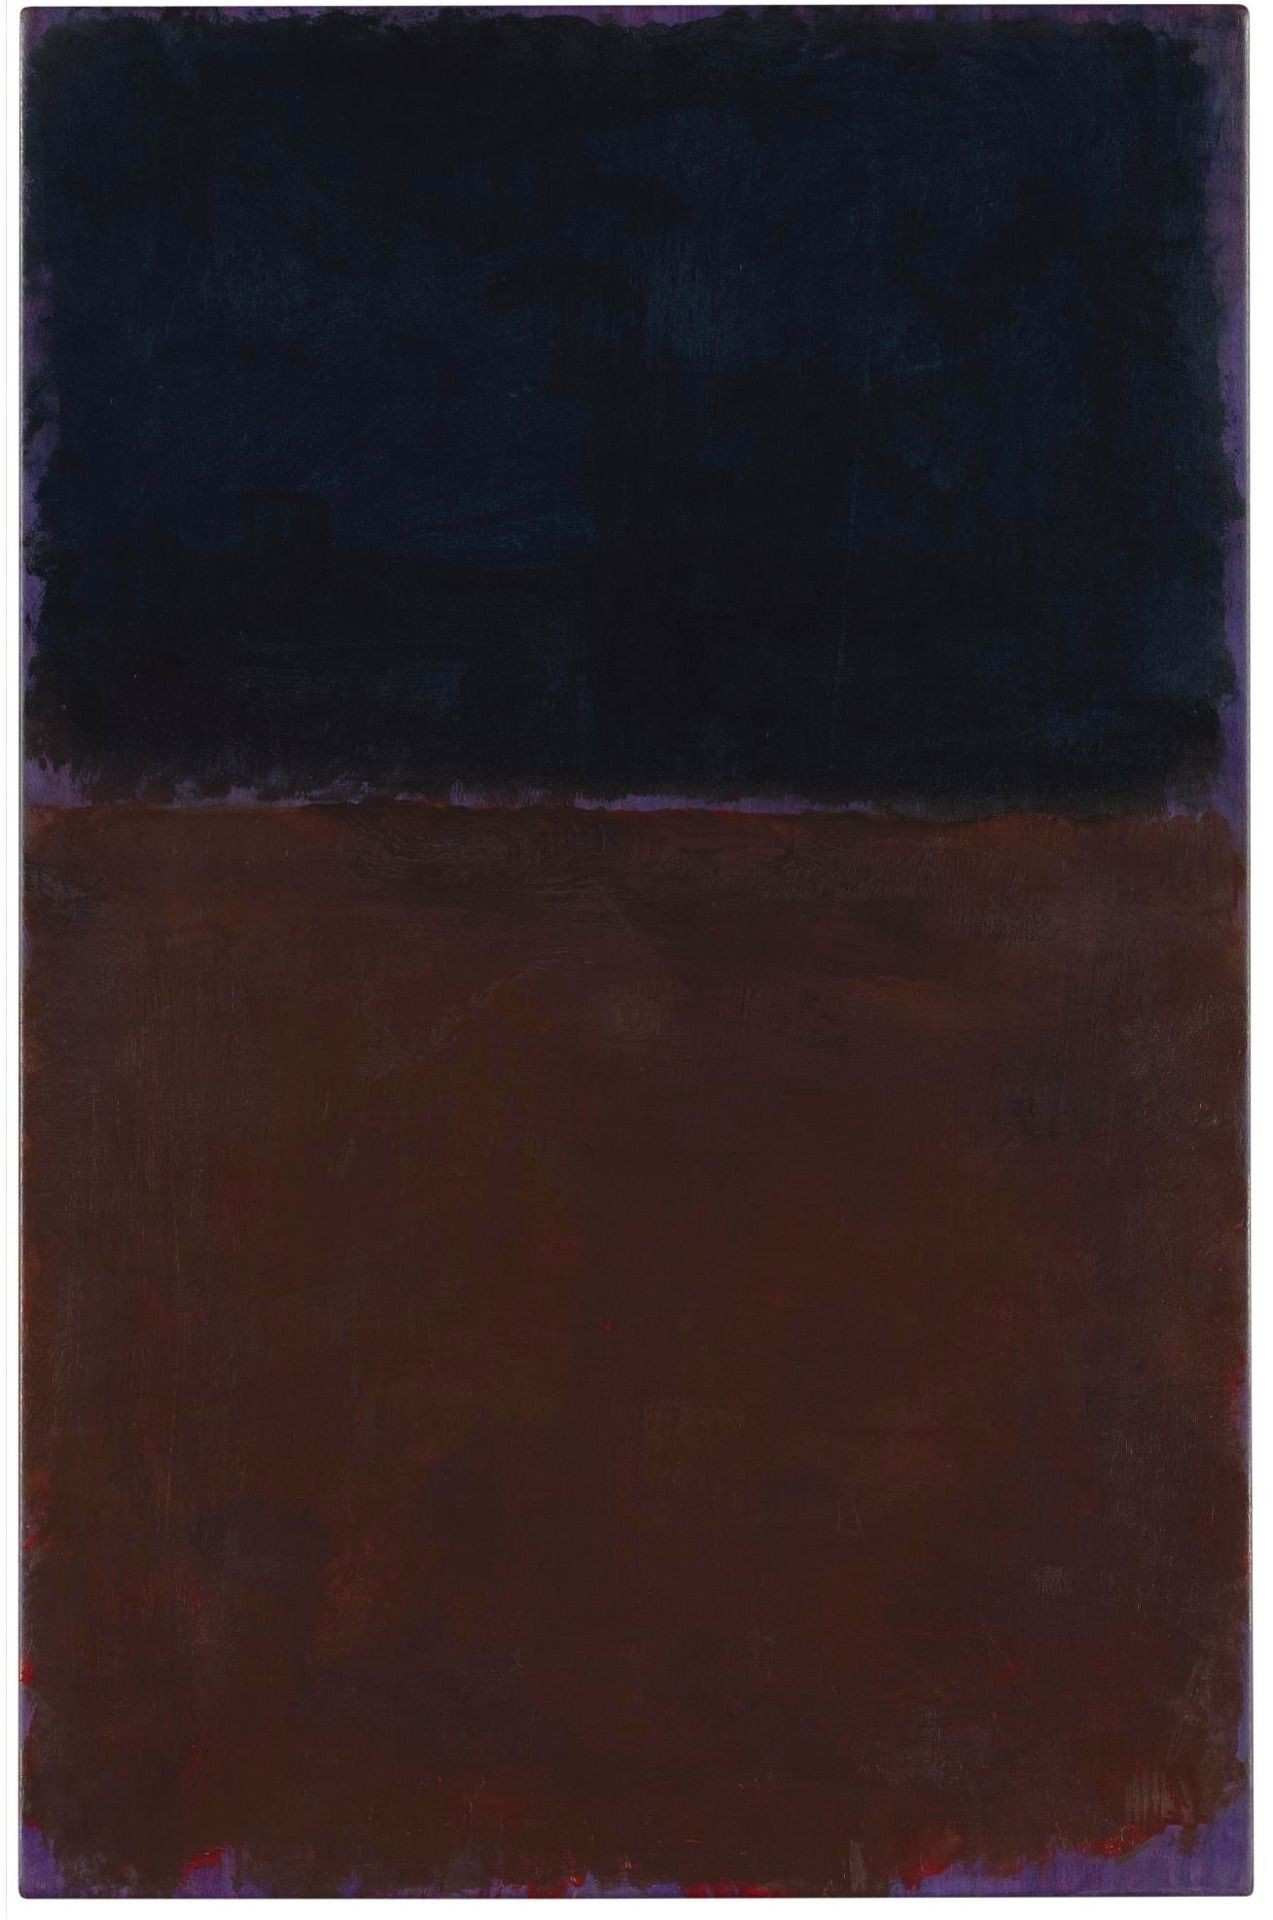 Mark Rothko Untitled Black Red Brown on Violet 1969 acrylic